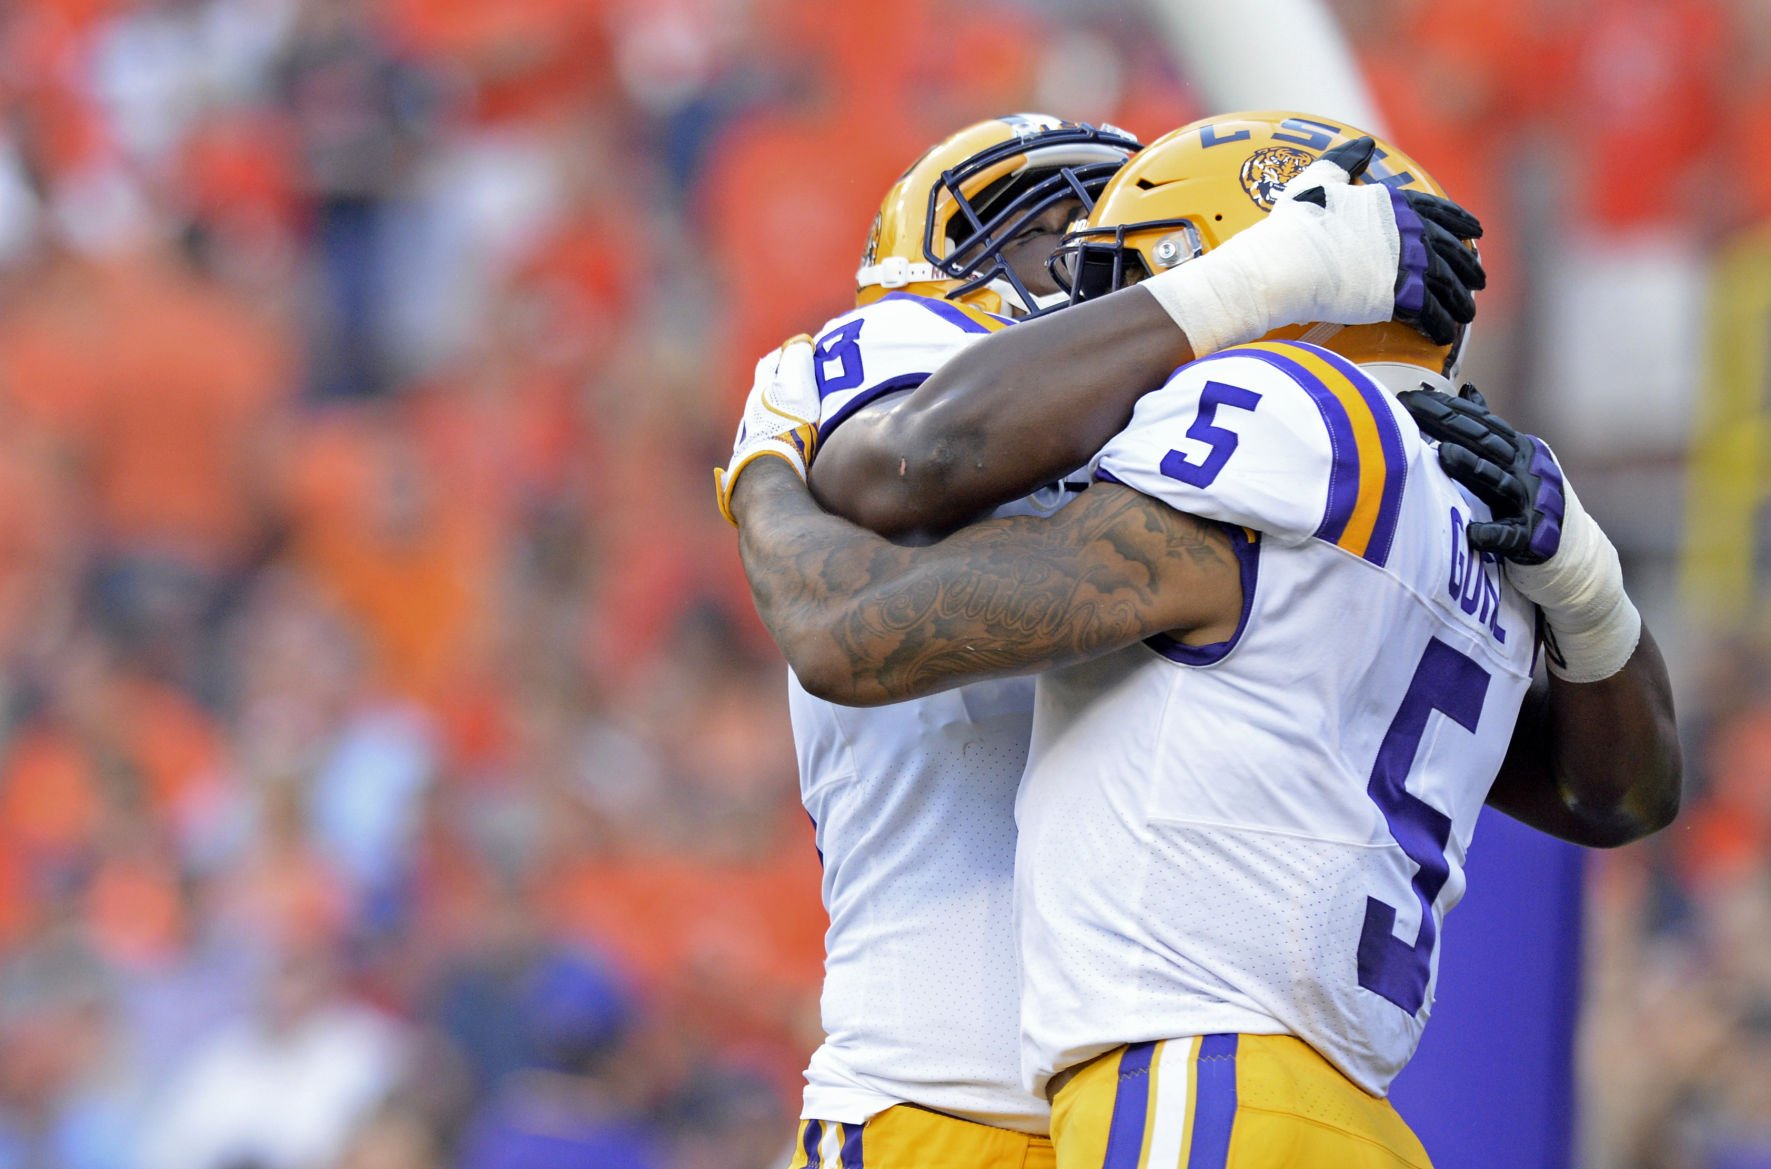 Ed Orgeron and LSU Hit Rock Bottom in Home Loss to Troy